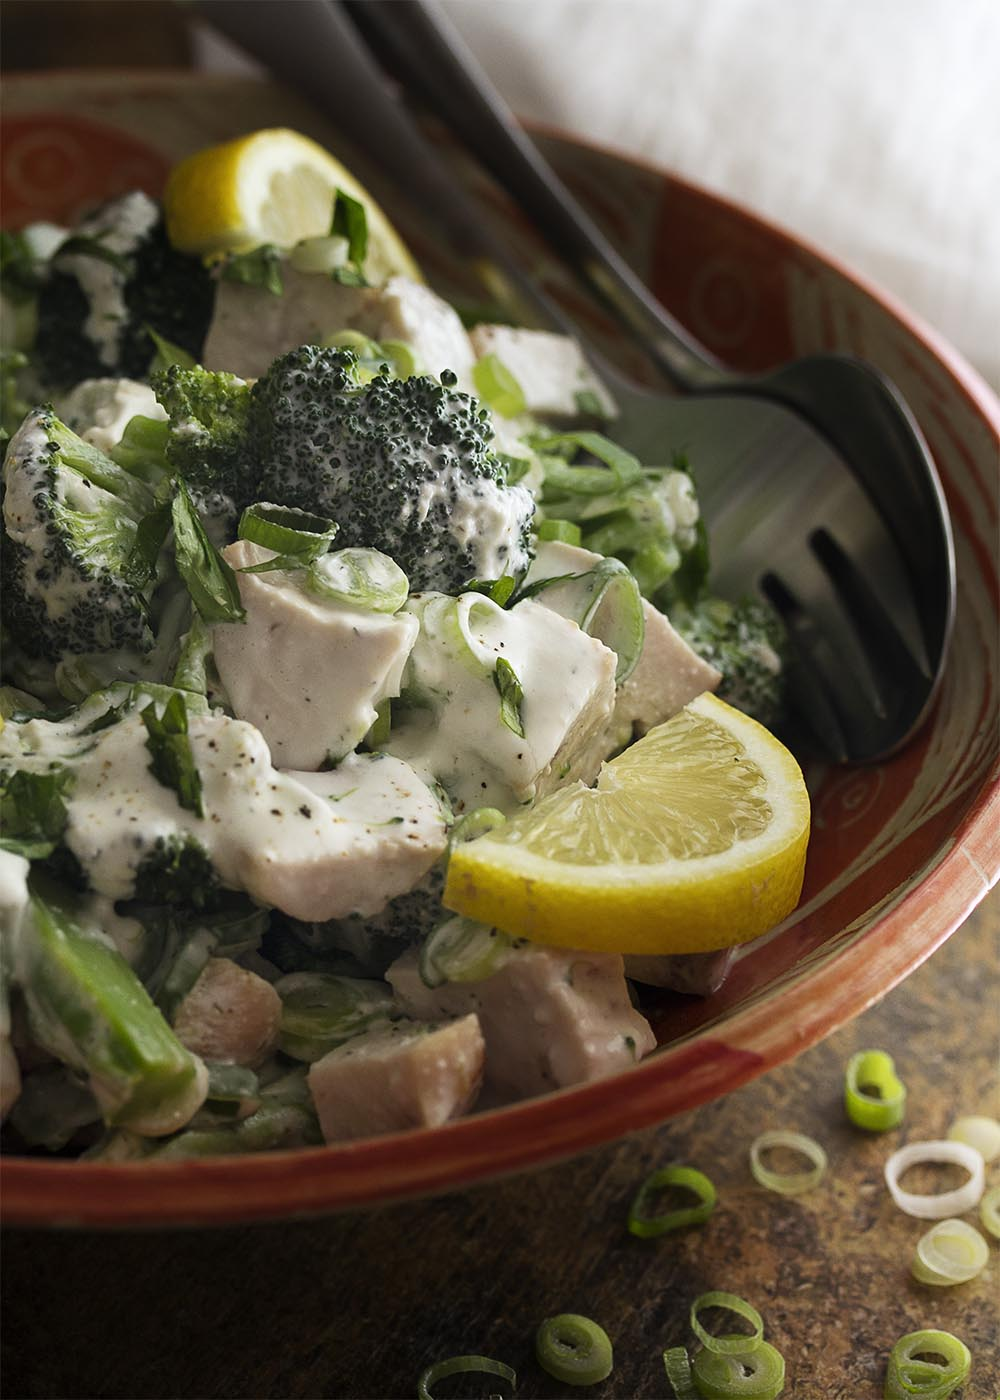 Juicy diced chicken and tender broccoli are tossed with a creamy, cottage cheese dressing in this simple but substantial summer salad. Healthy, low carb, and easy! | justalittlebitofbacon.com